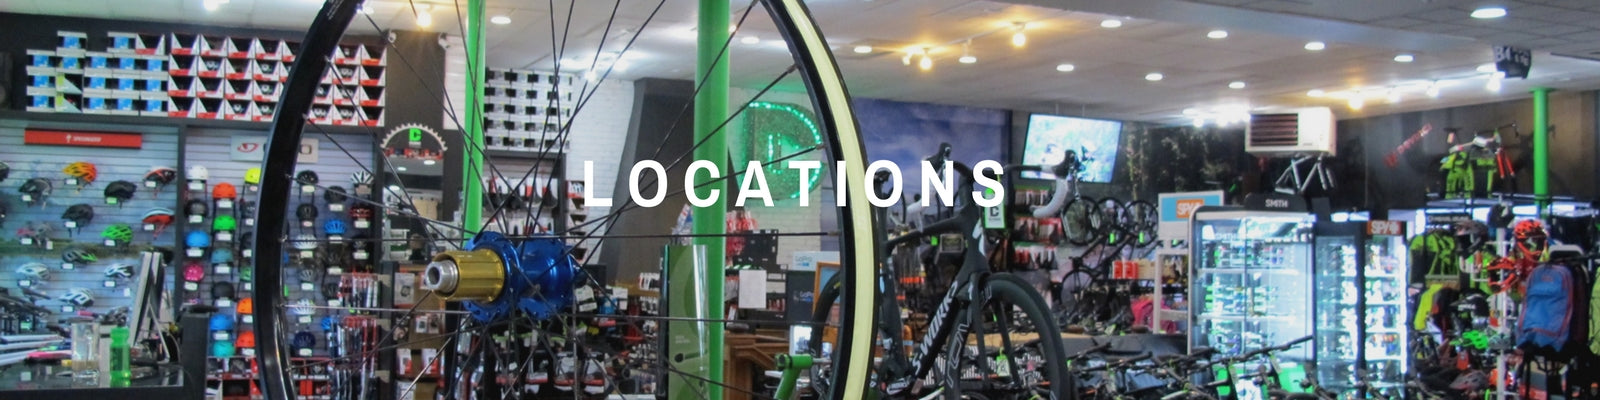 Locations - Dunbar Cycles Full Service MTB Shop